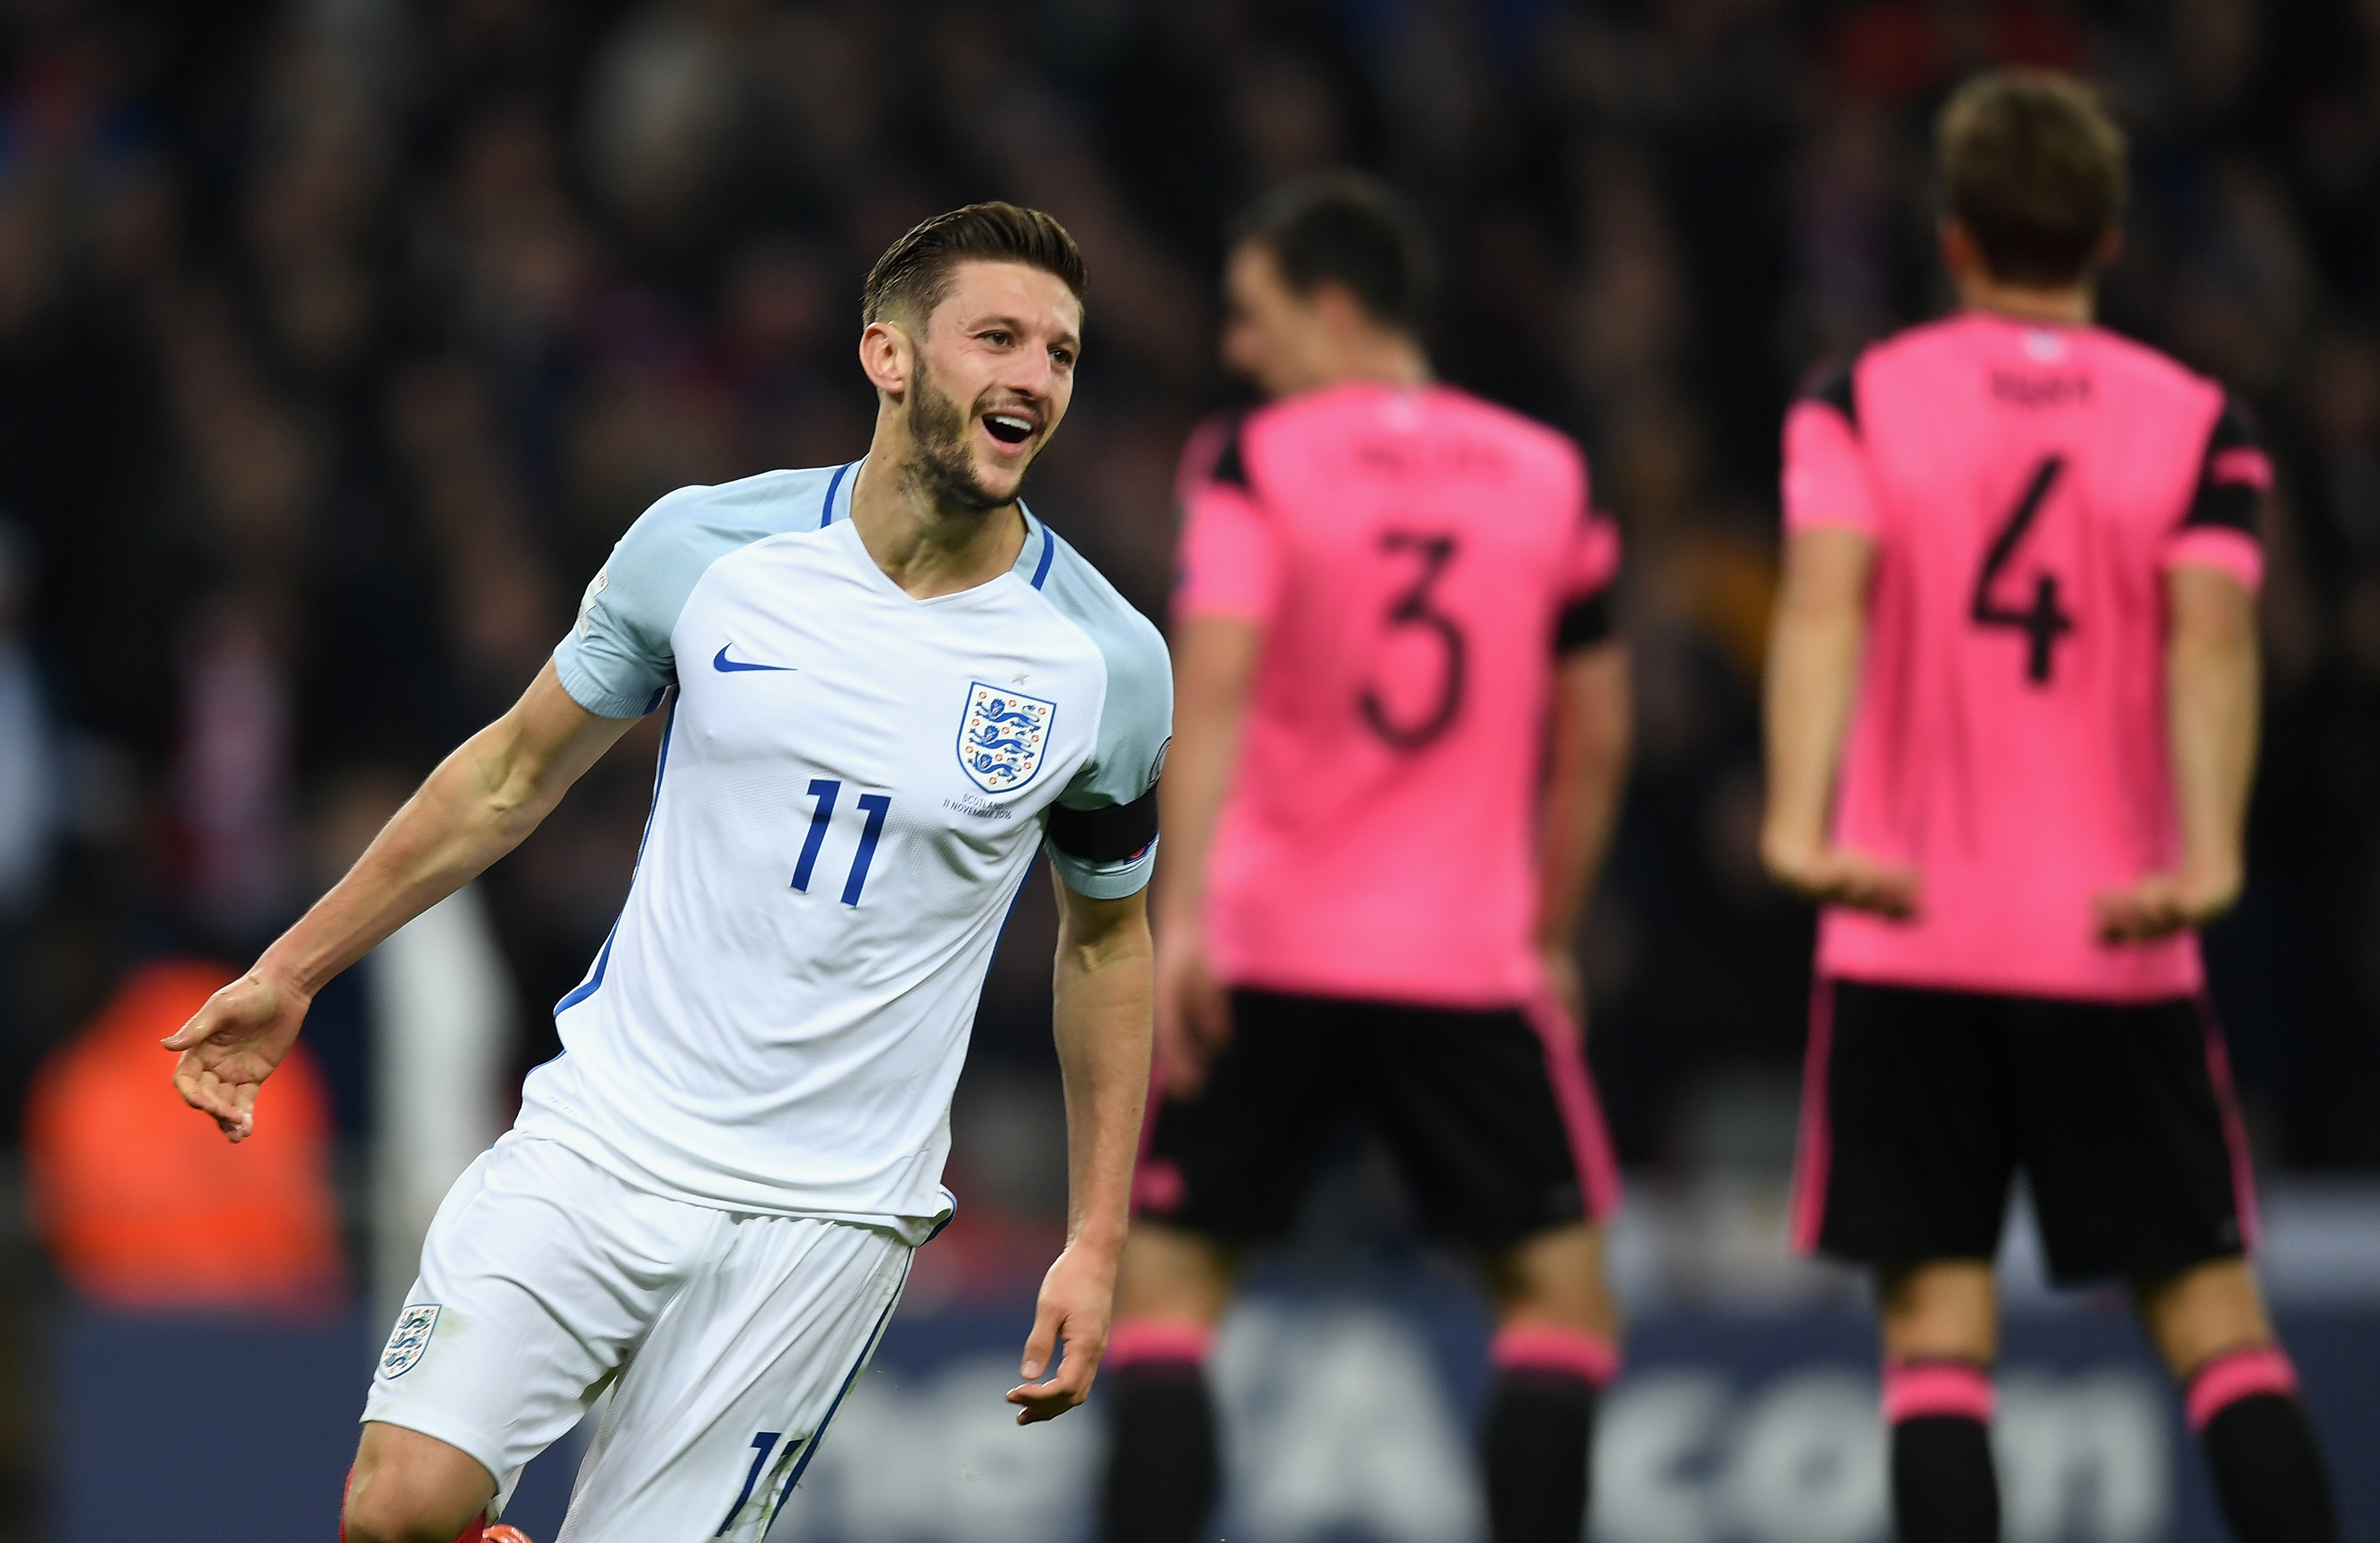 'Liverpool's Adam Lallana is England's best player on current form,' says Matt Le Tissier